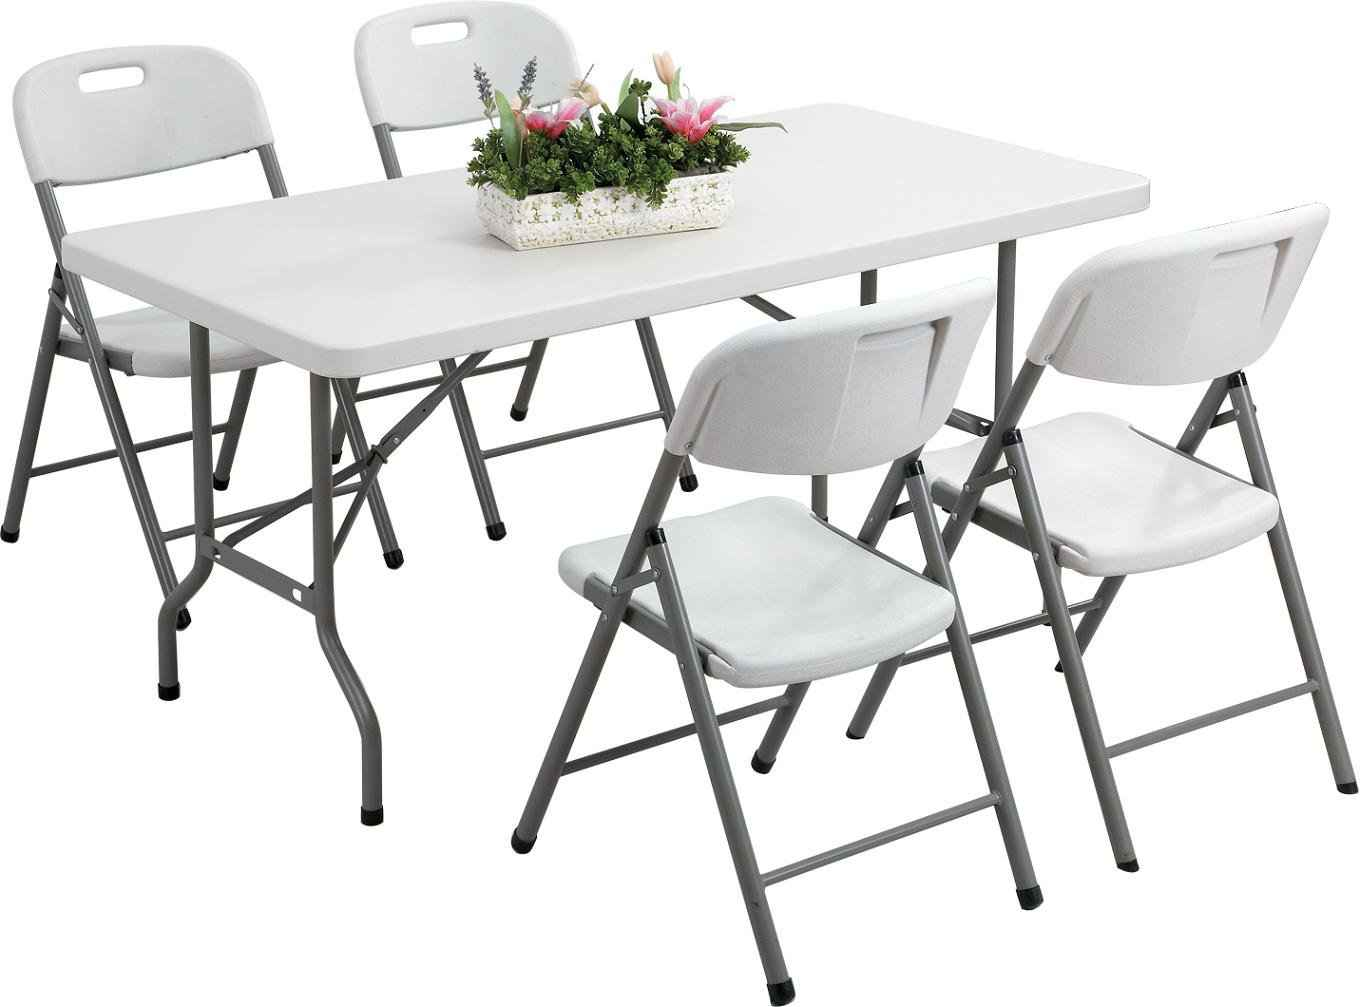 Walmart feel the home for Deck table and chairs